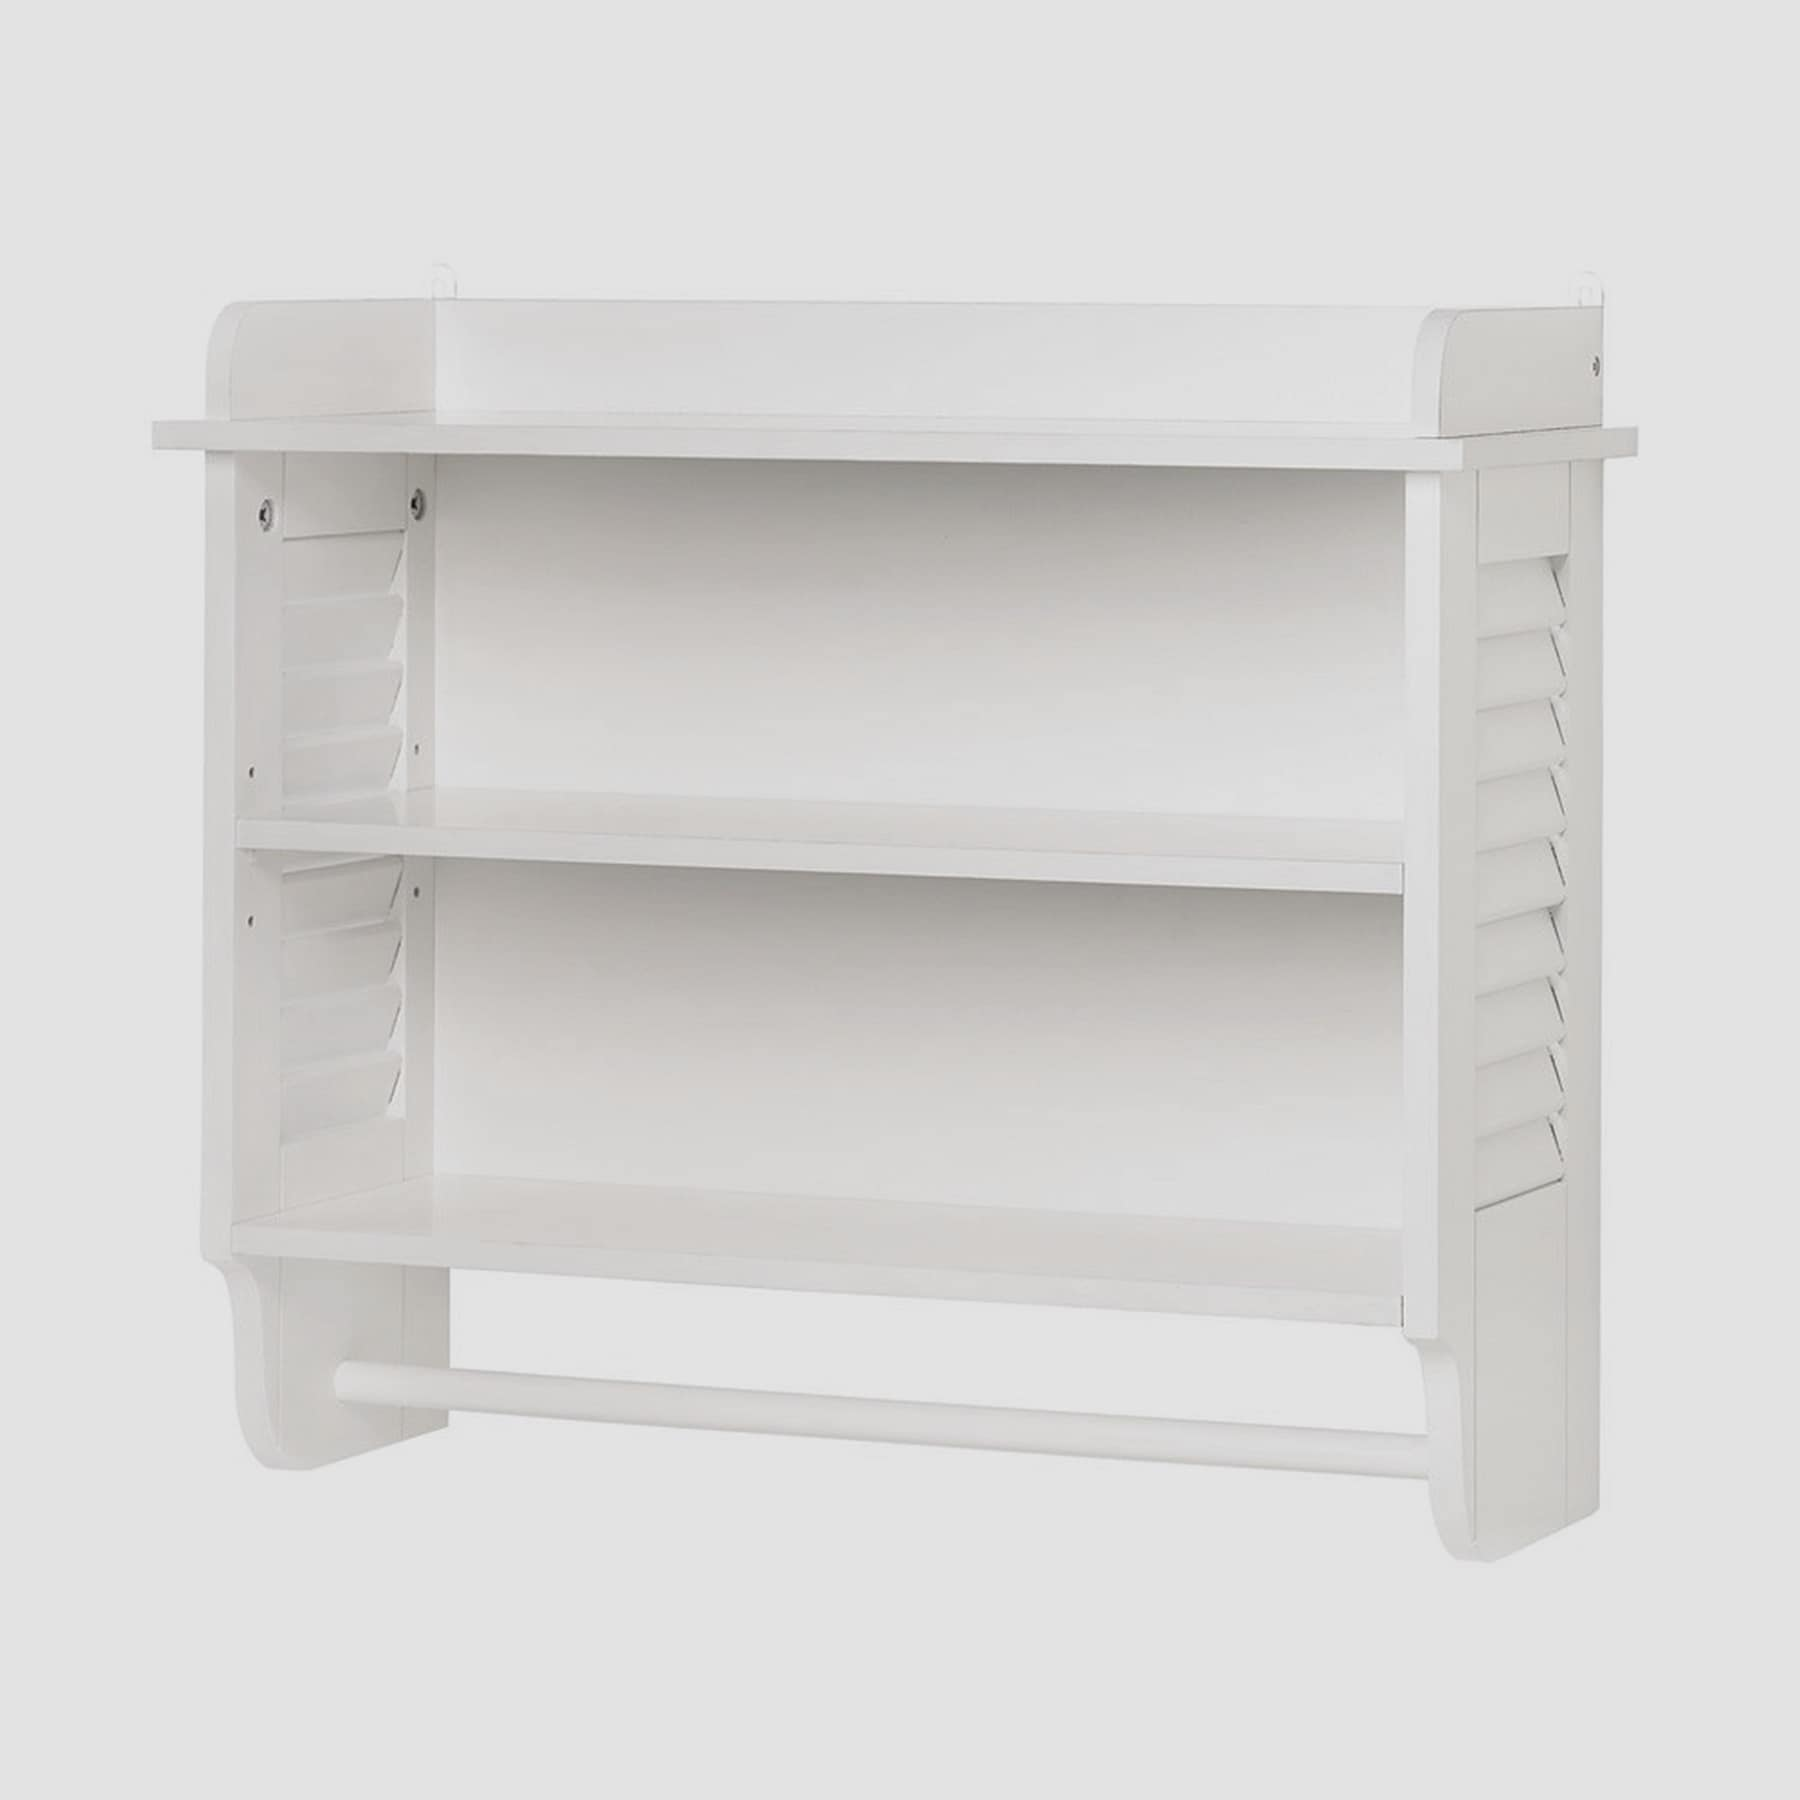 Olympia Wall Mounted Wooden Shelving White